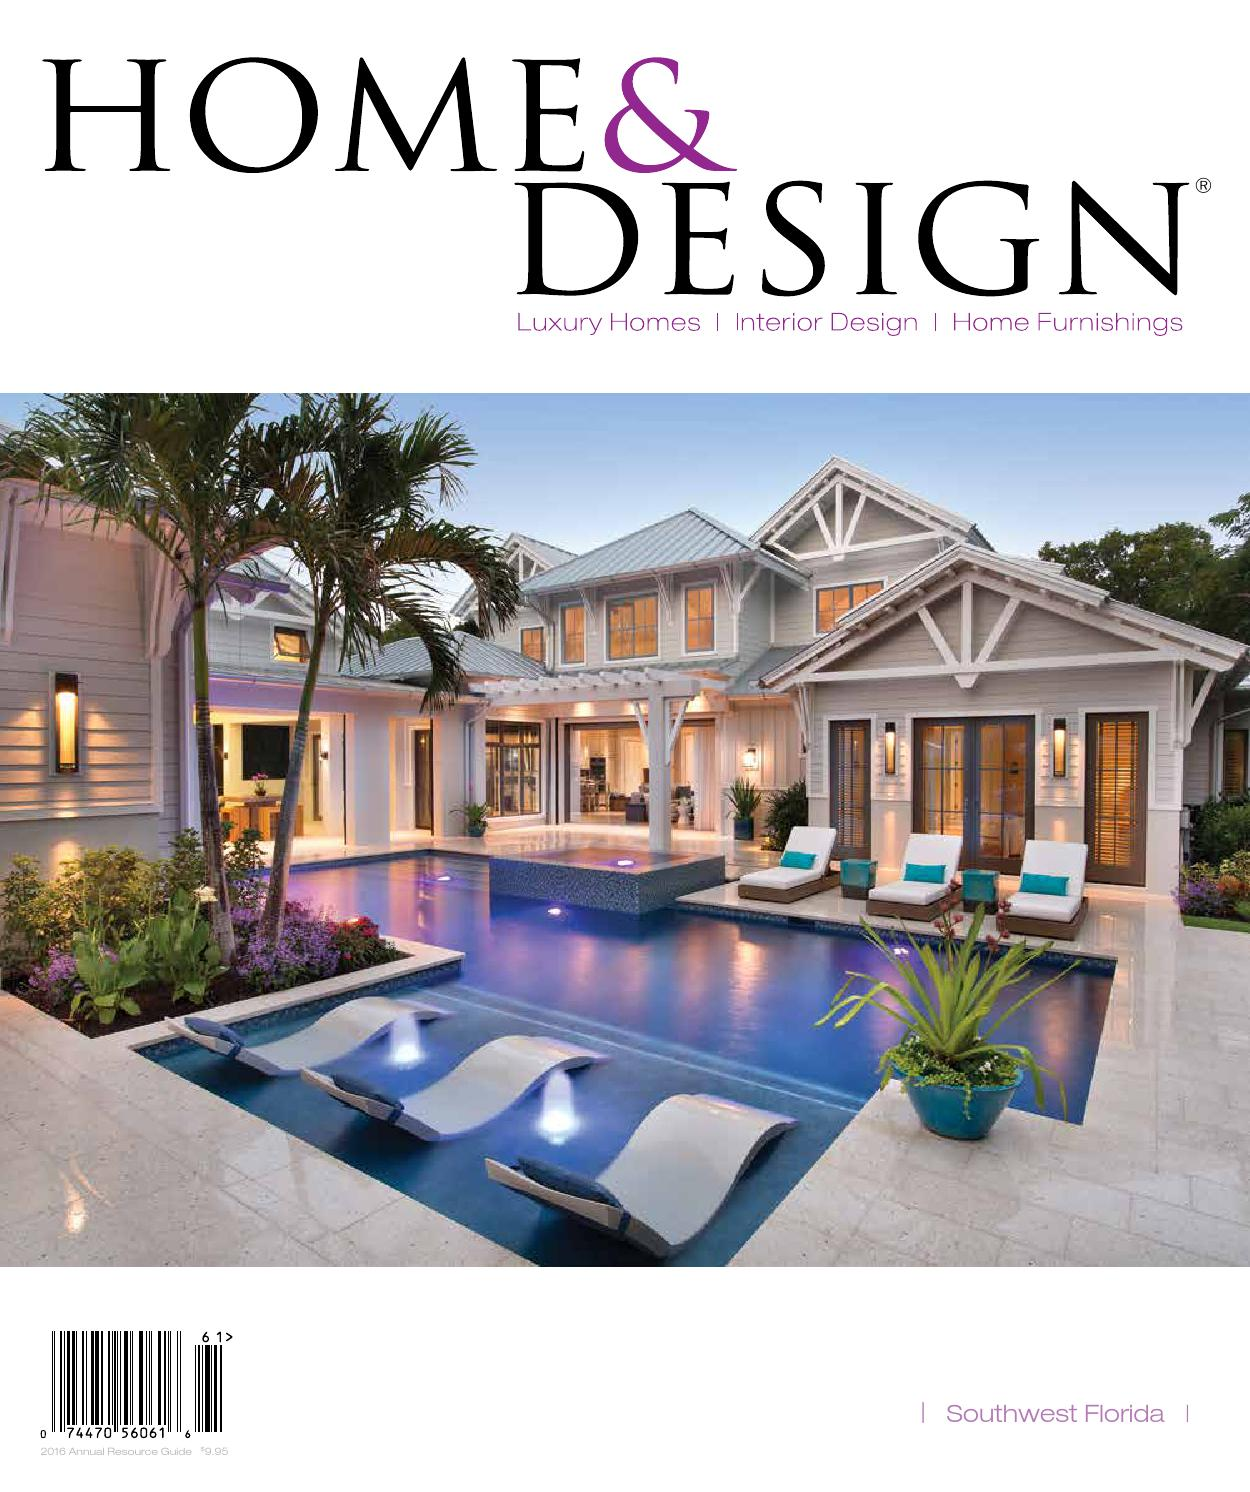 Home & Design Magazine Annual Resource Guide 2016 Southwest